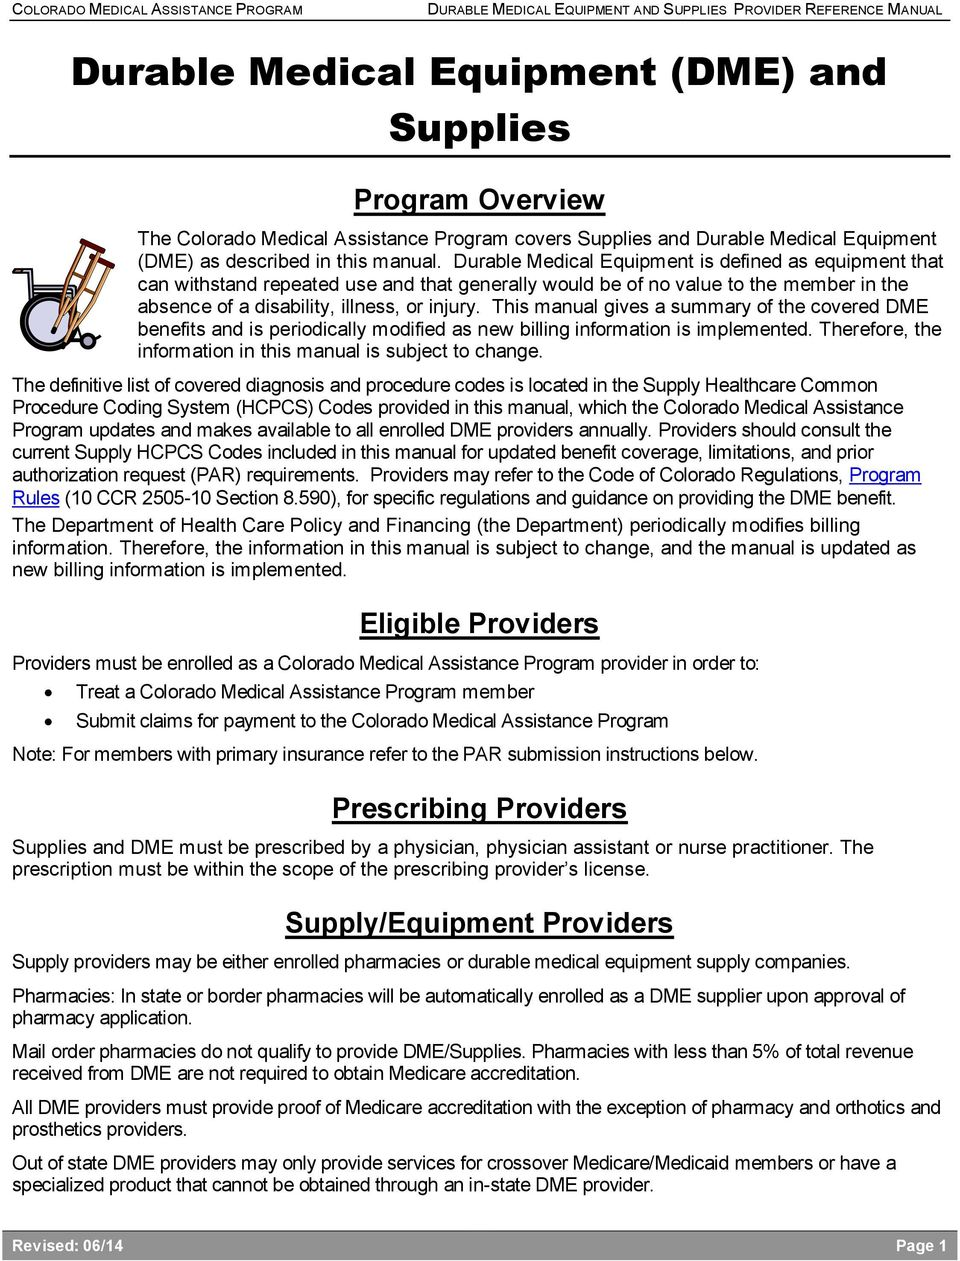 Durable Medical Equipment (DME) and Supplies - PDF